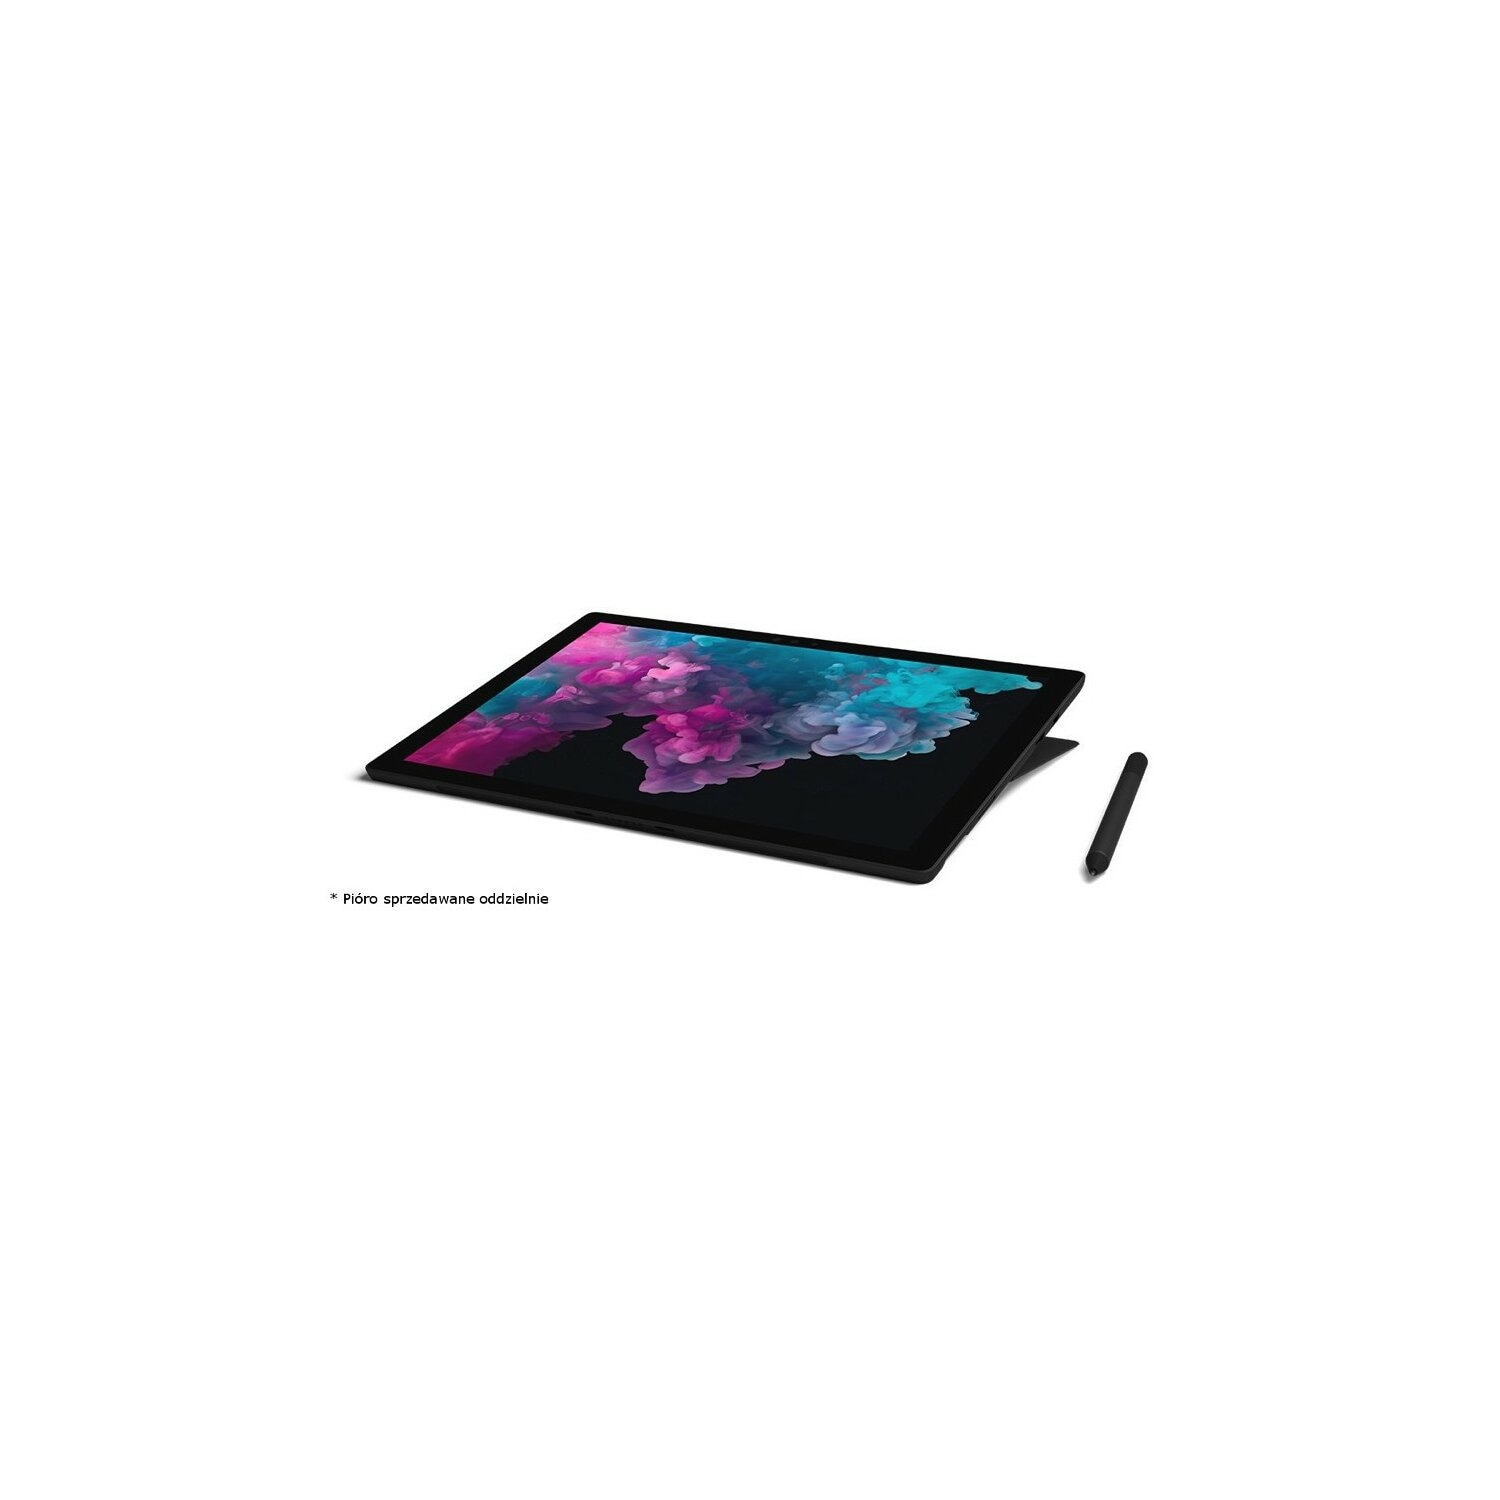 Laptop/Tablet 2w1 MICROSOFT Surface Pro 6 i7-8650U/16GB/512GB SSD/Win10H Czarny